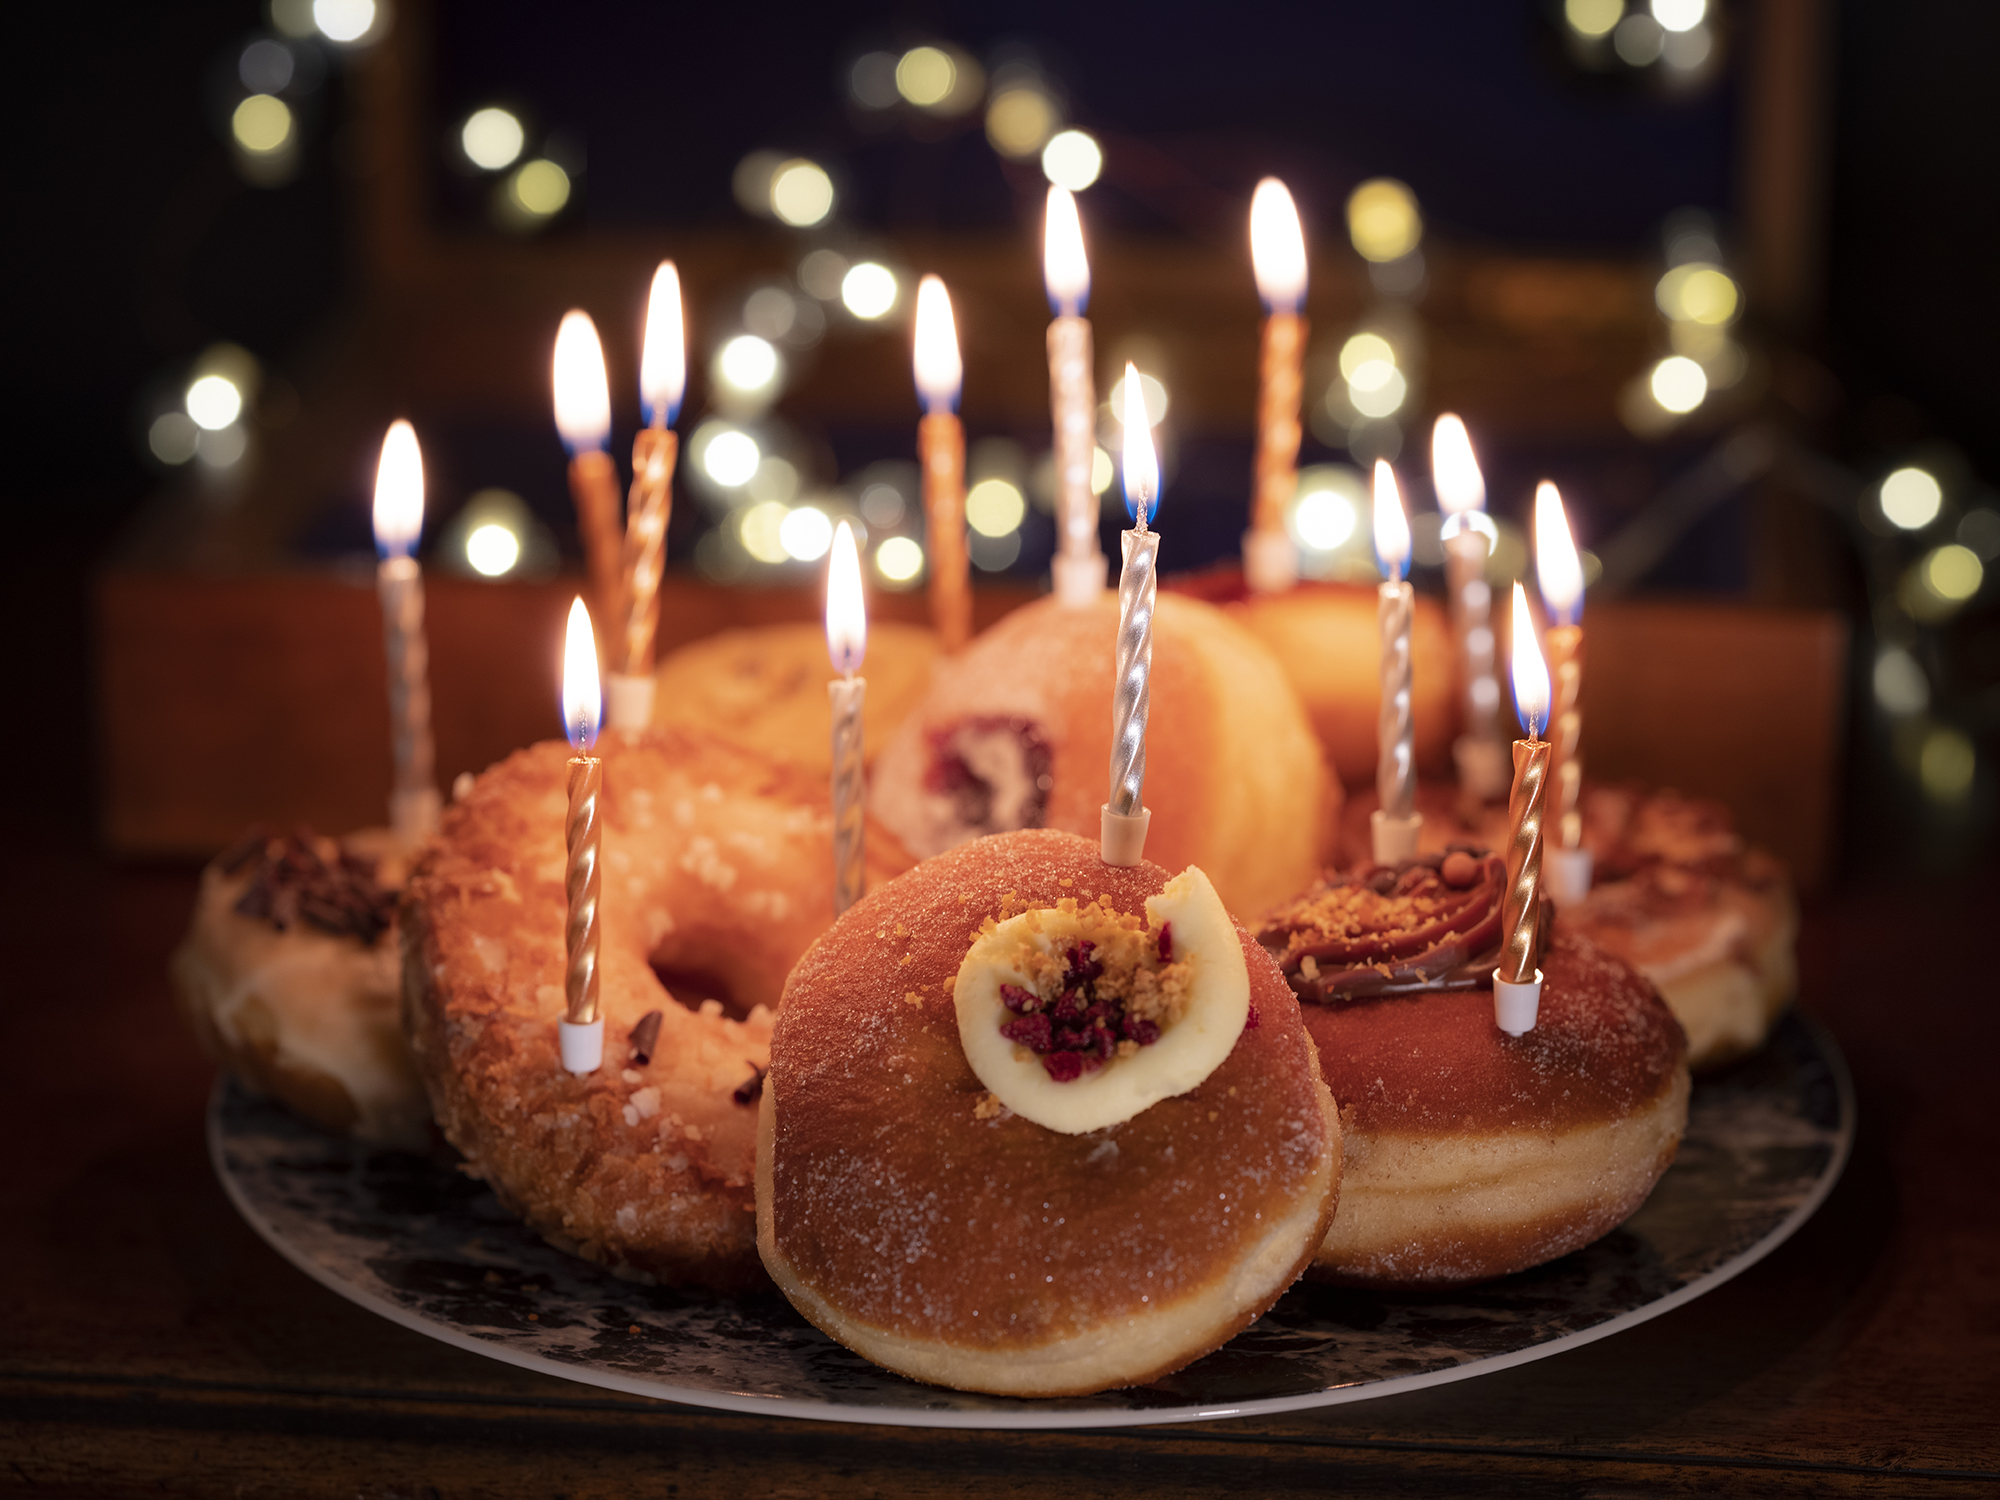 Birthday doughnuts | By McAteer Photo